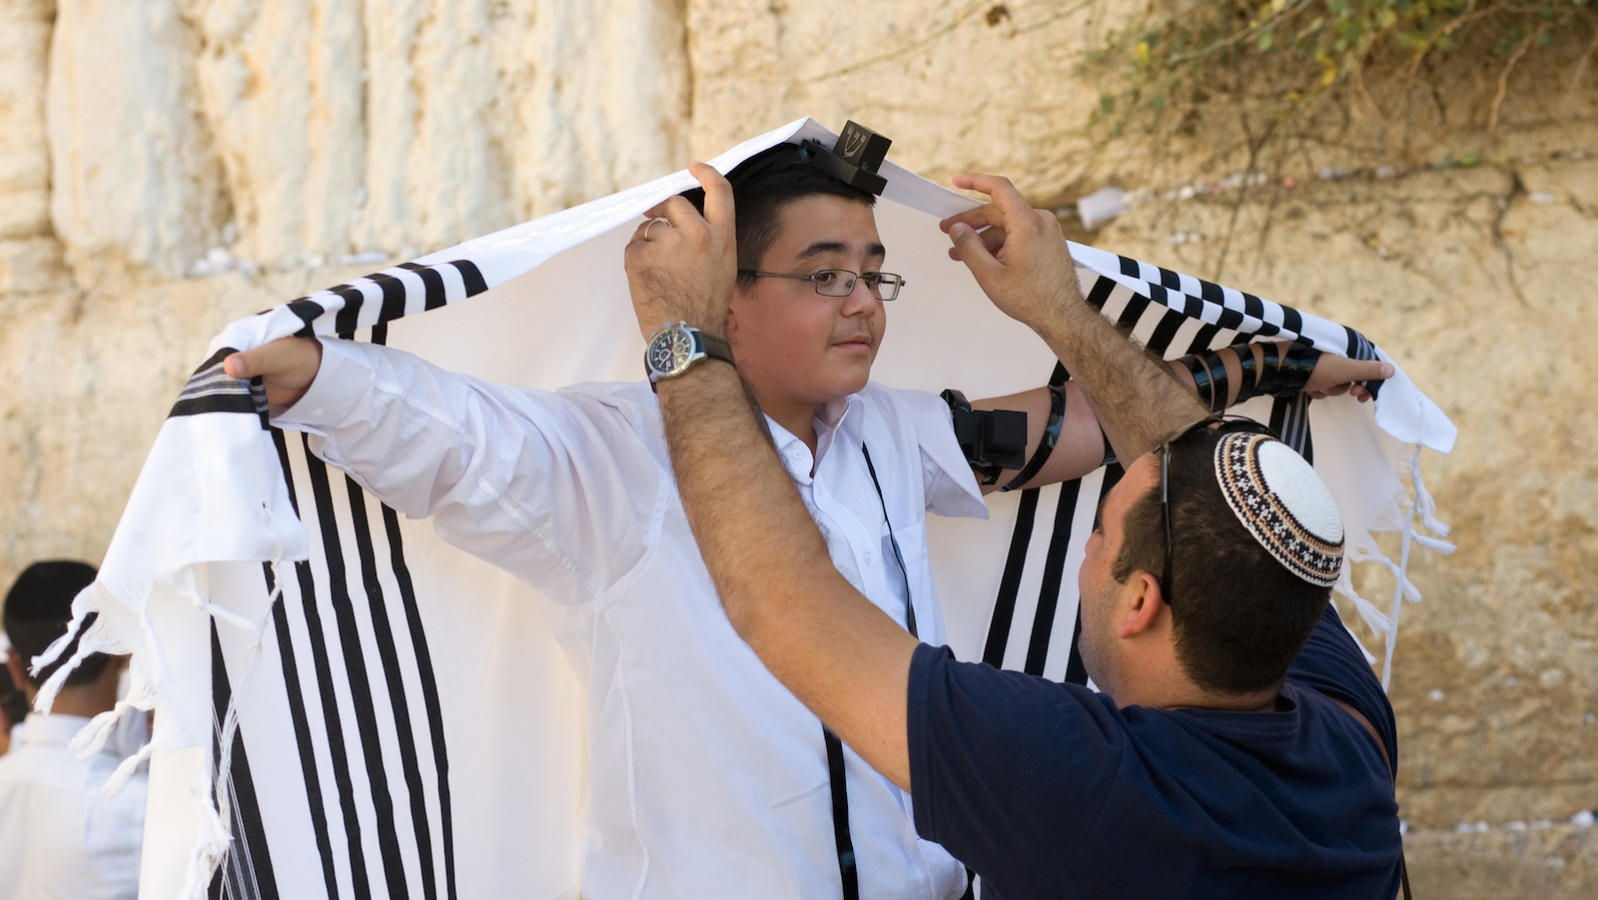 Kippah, Tallit and Tefillin | My Jewish Learning